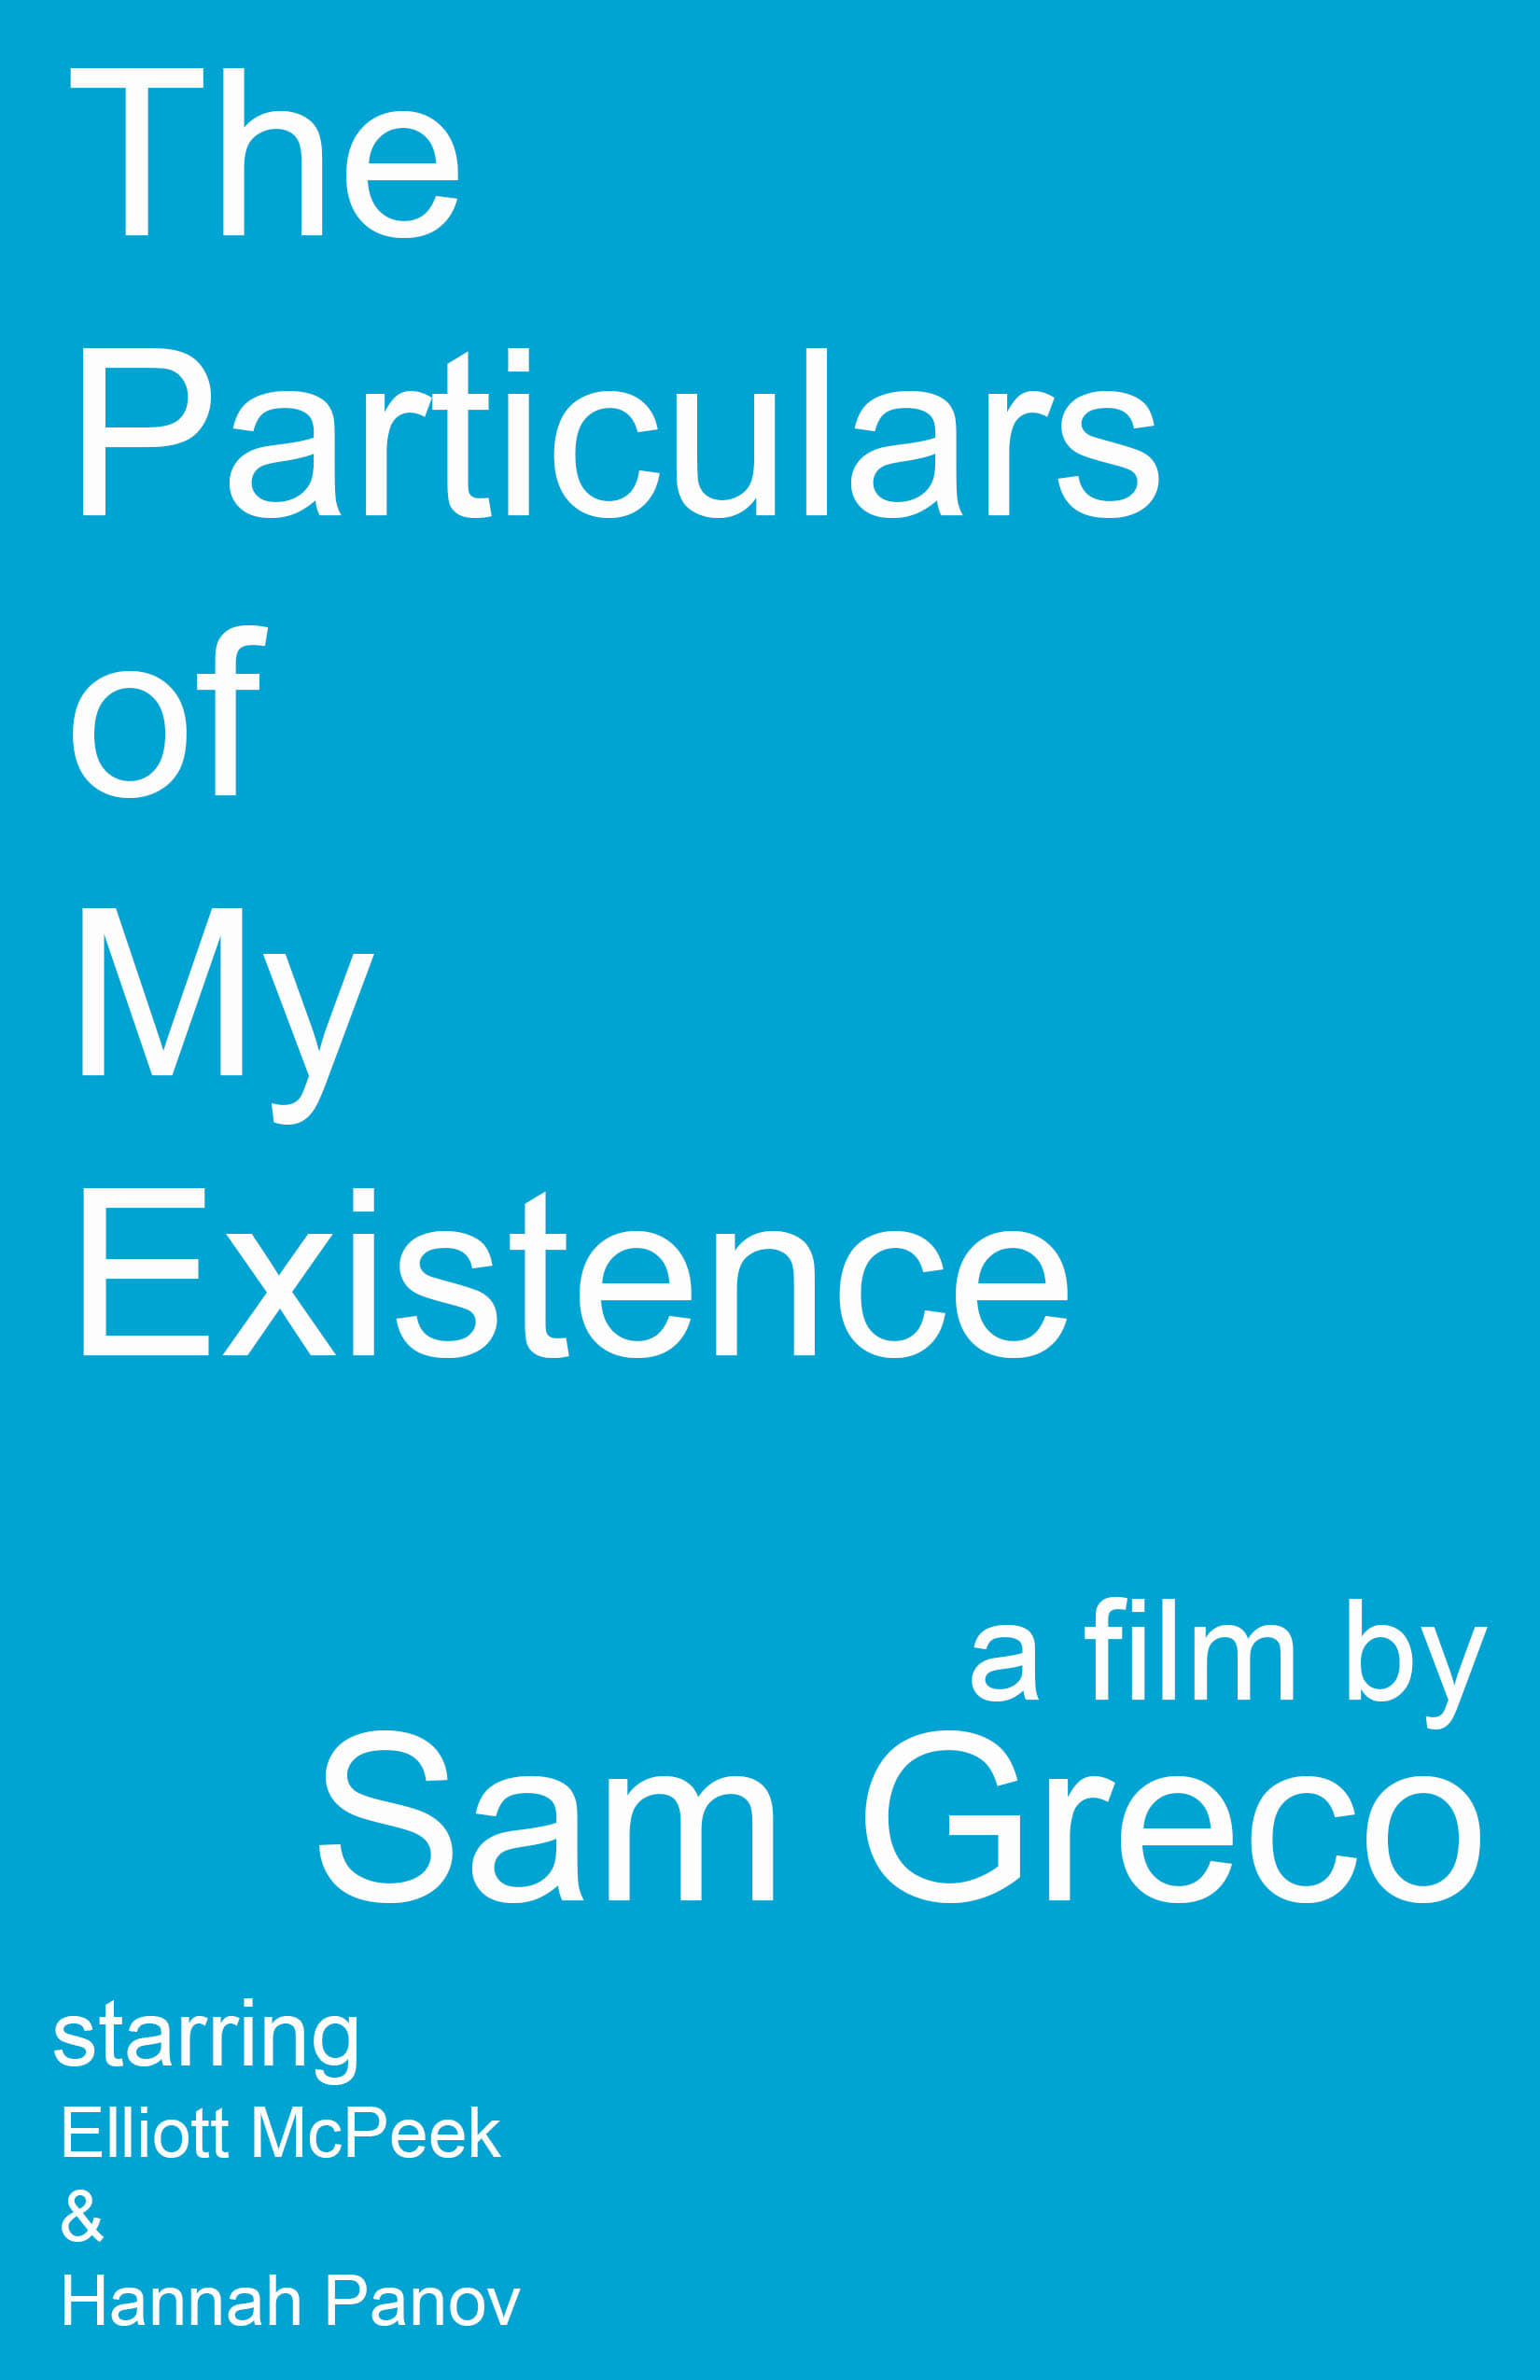 The Particulars of My Existence (1970)